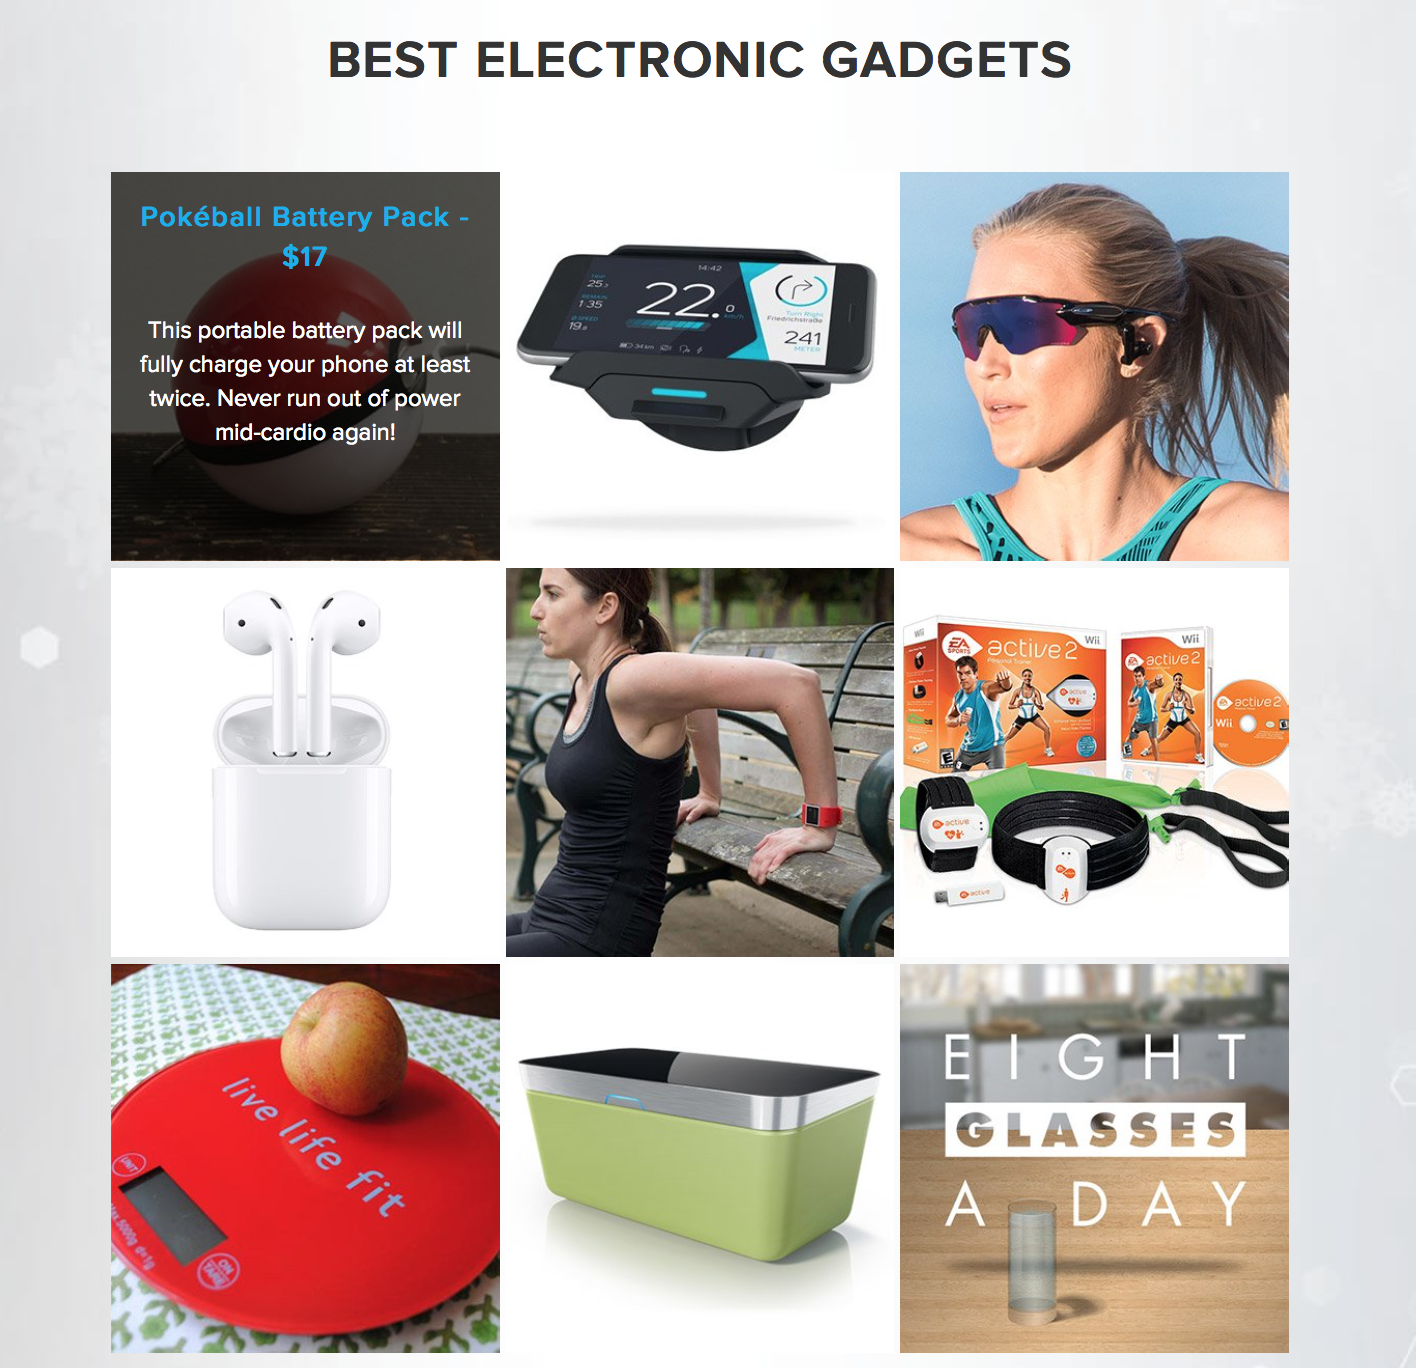 Bodybuilding.com:   Holiday Fit Gift Guide  This guide features easy-access points with a category breakdowns and short rollover descriptions on workout clothes, electronic gadgets, and supps and snacks.